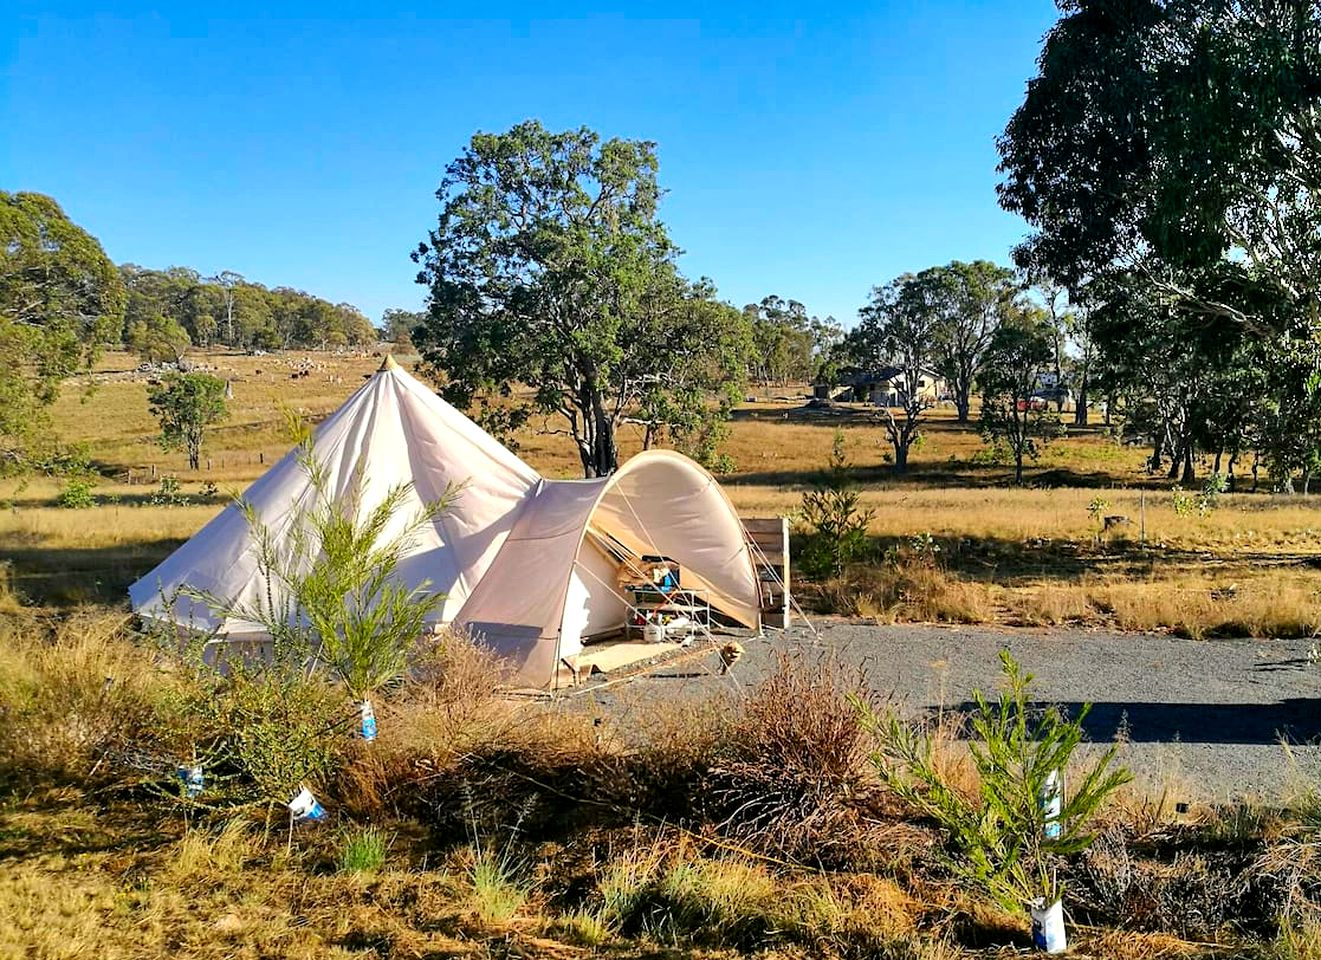 This cozy bell tents is ideal for Tenterfield camping and can accommodate a family holiday in New South Wales. Enjoy glamping in Australia!